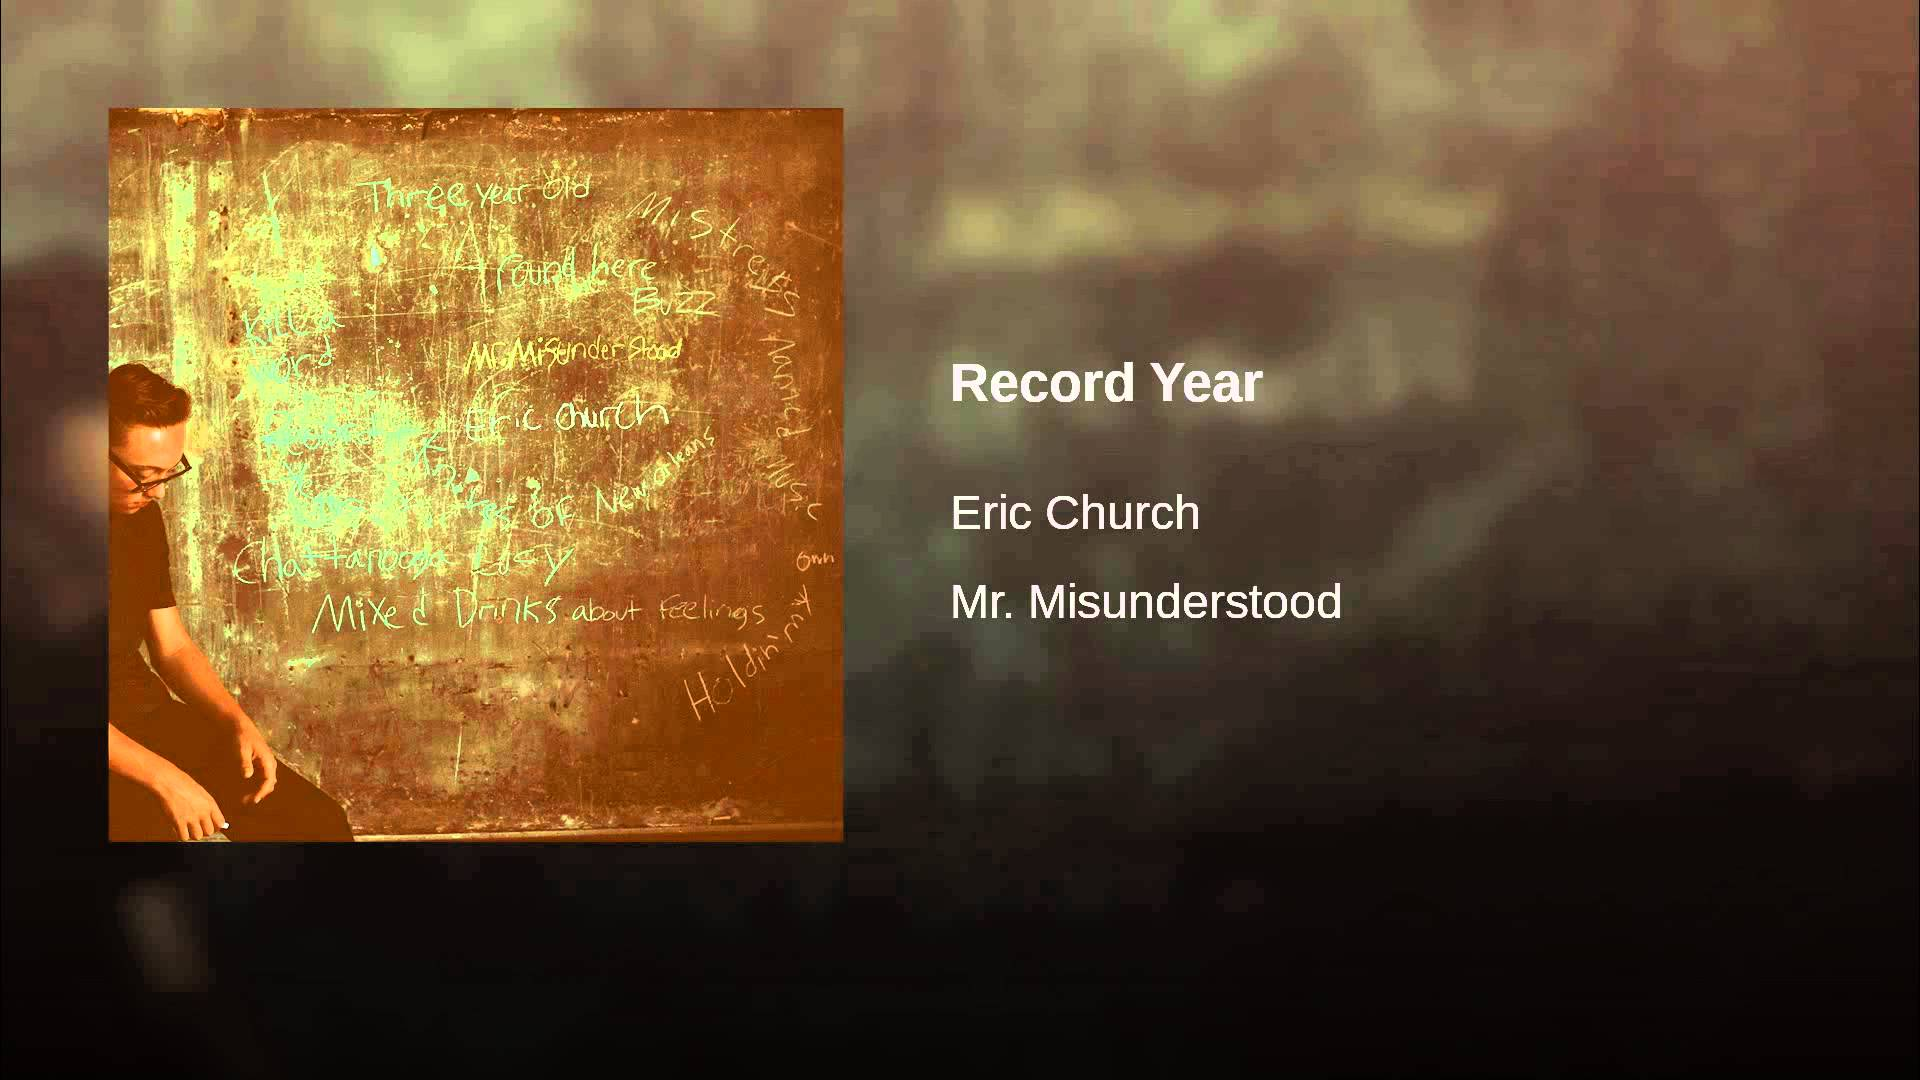 Listen to Eric Church's new single 'Record Year'